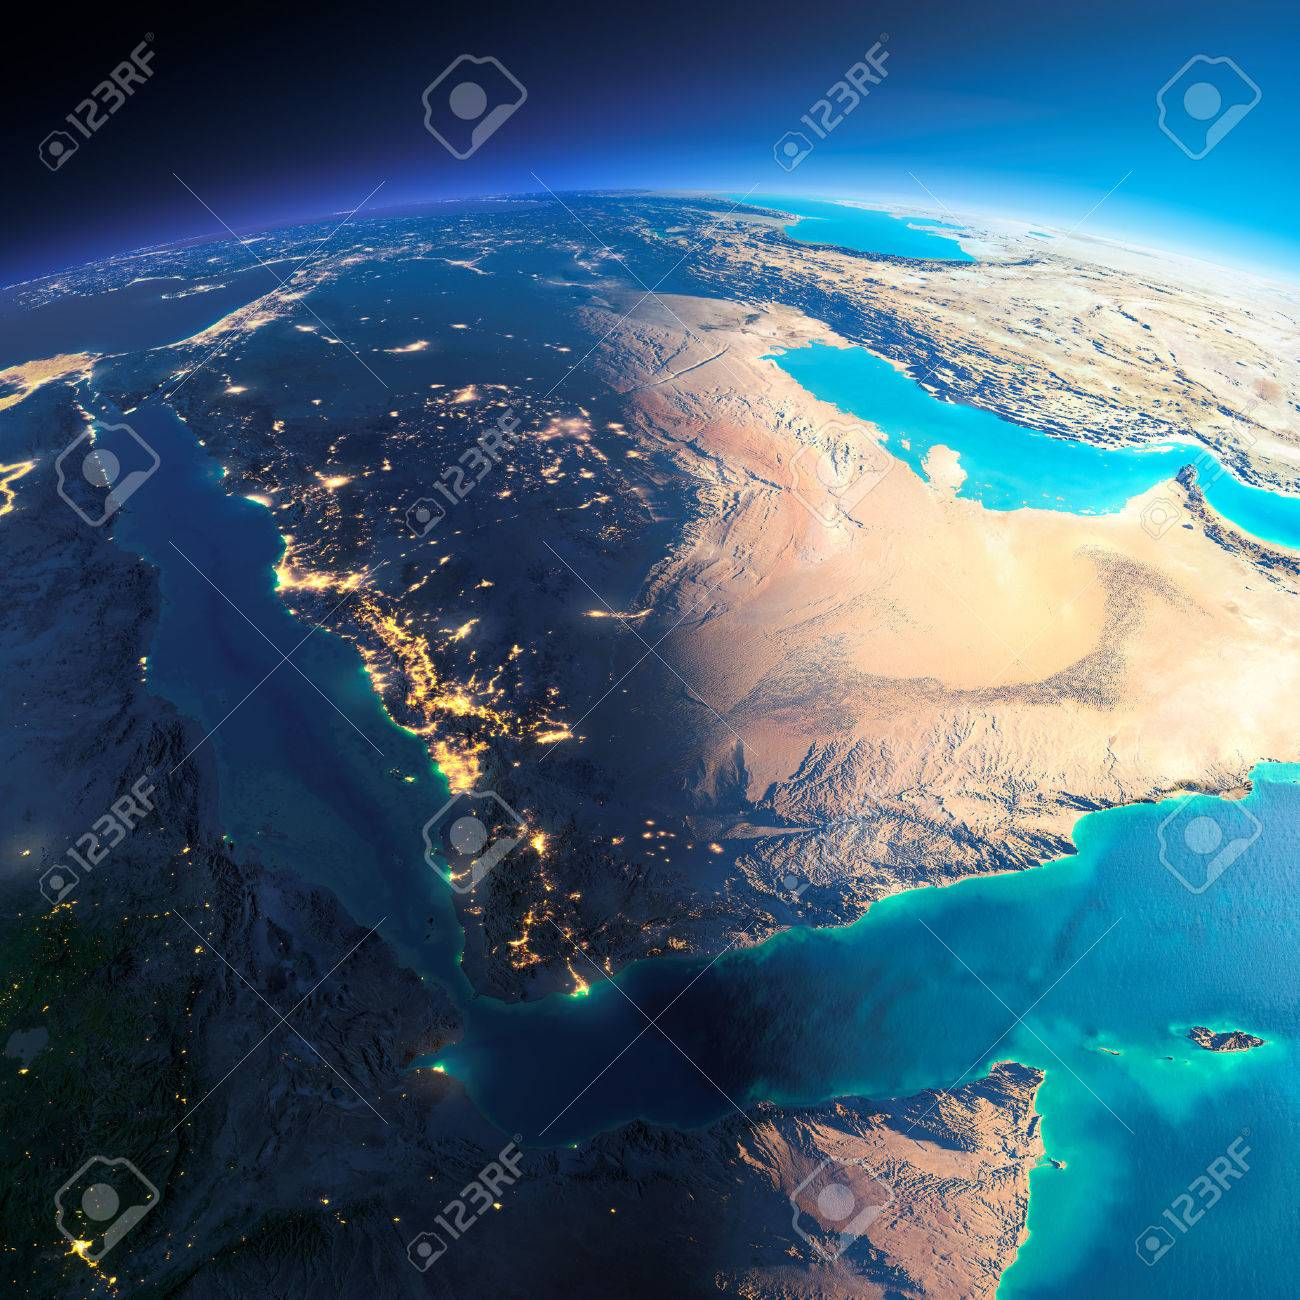 Highly detailed planet Earth. Night with glowing city lights gives way to day. The boundary of the night & day. Saudi Arabia. Elements of this image furnished by NASA - 39100904